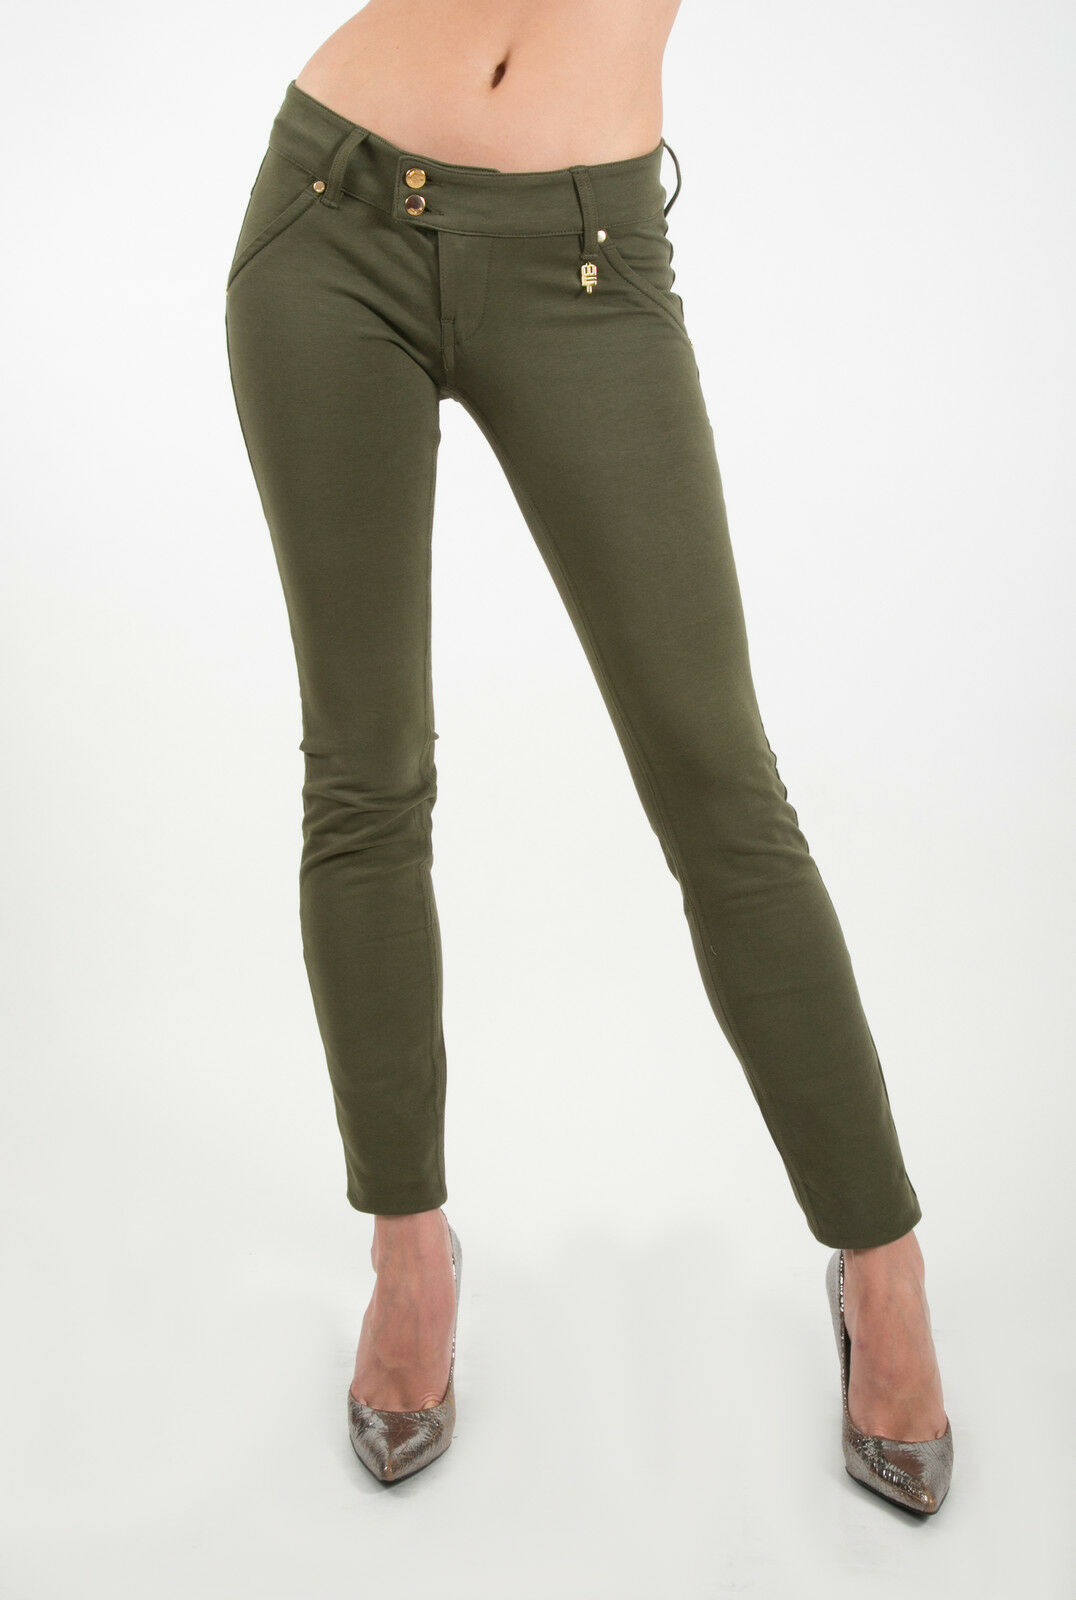 MET in Jeans K-FIT J green Olive Stretch Pants Slim fit plush trousers low-waist